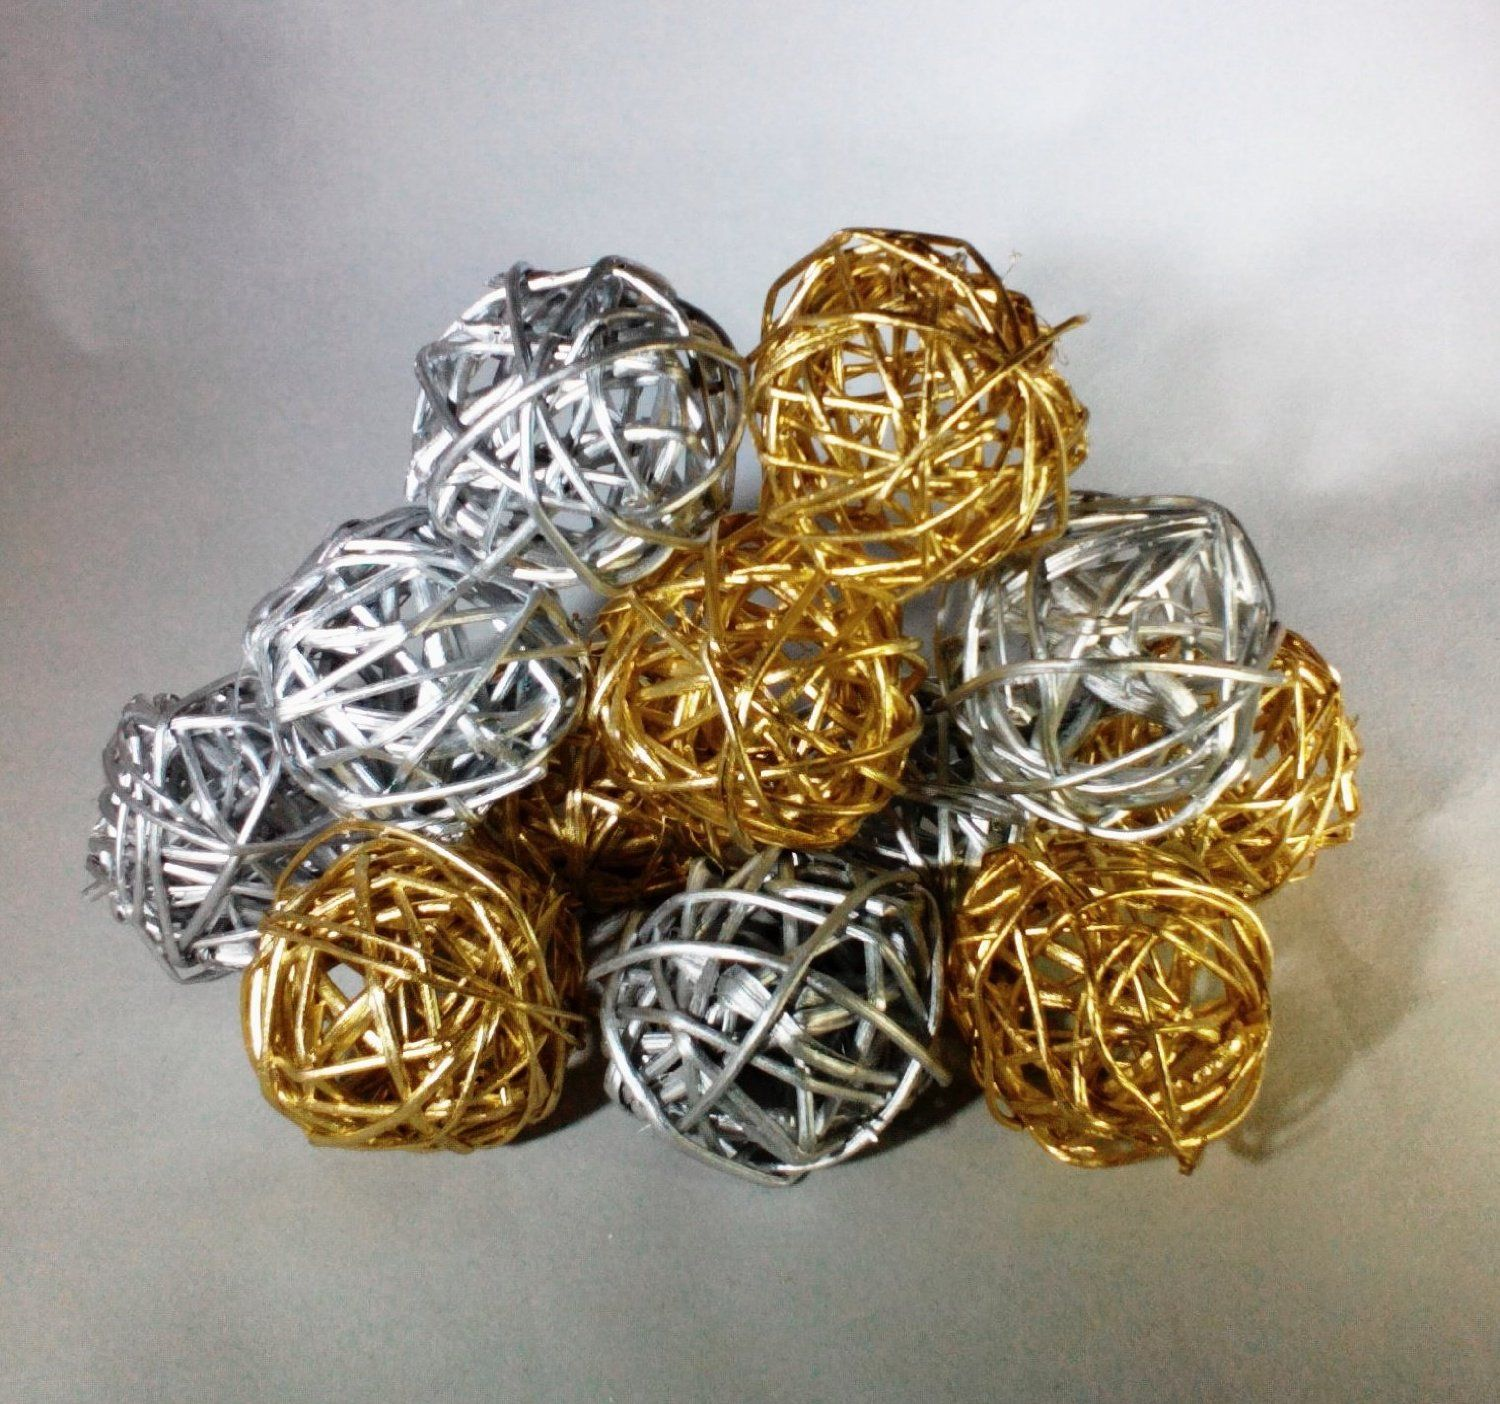 Decorative Bowl Fillers Amazon Decorative Spheres Silver And Gold Rattan Vase